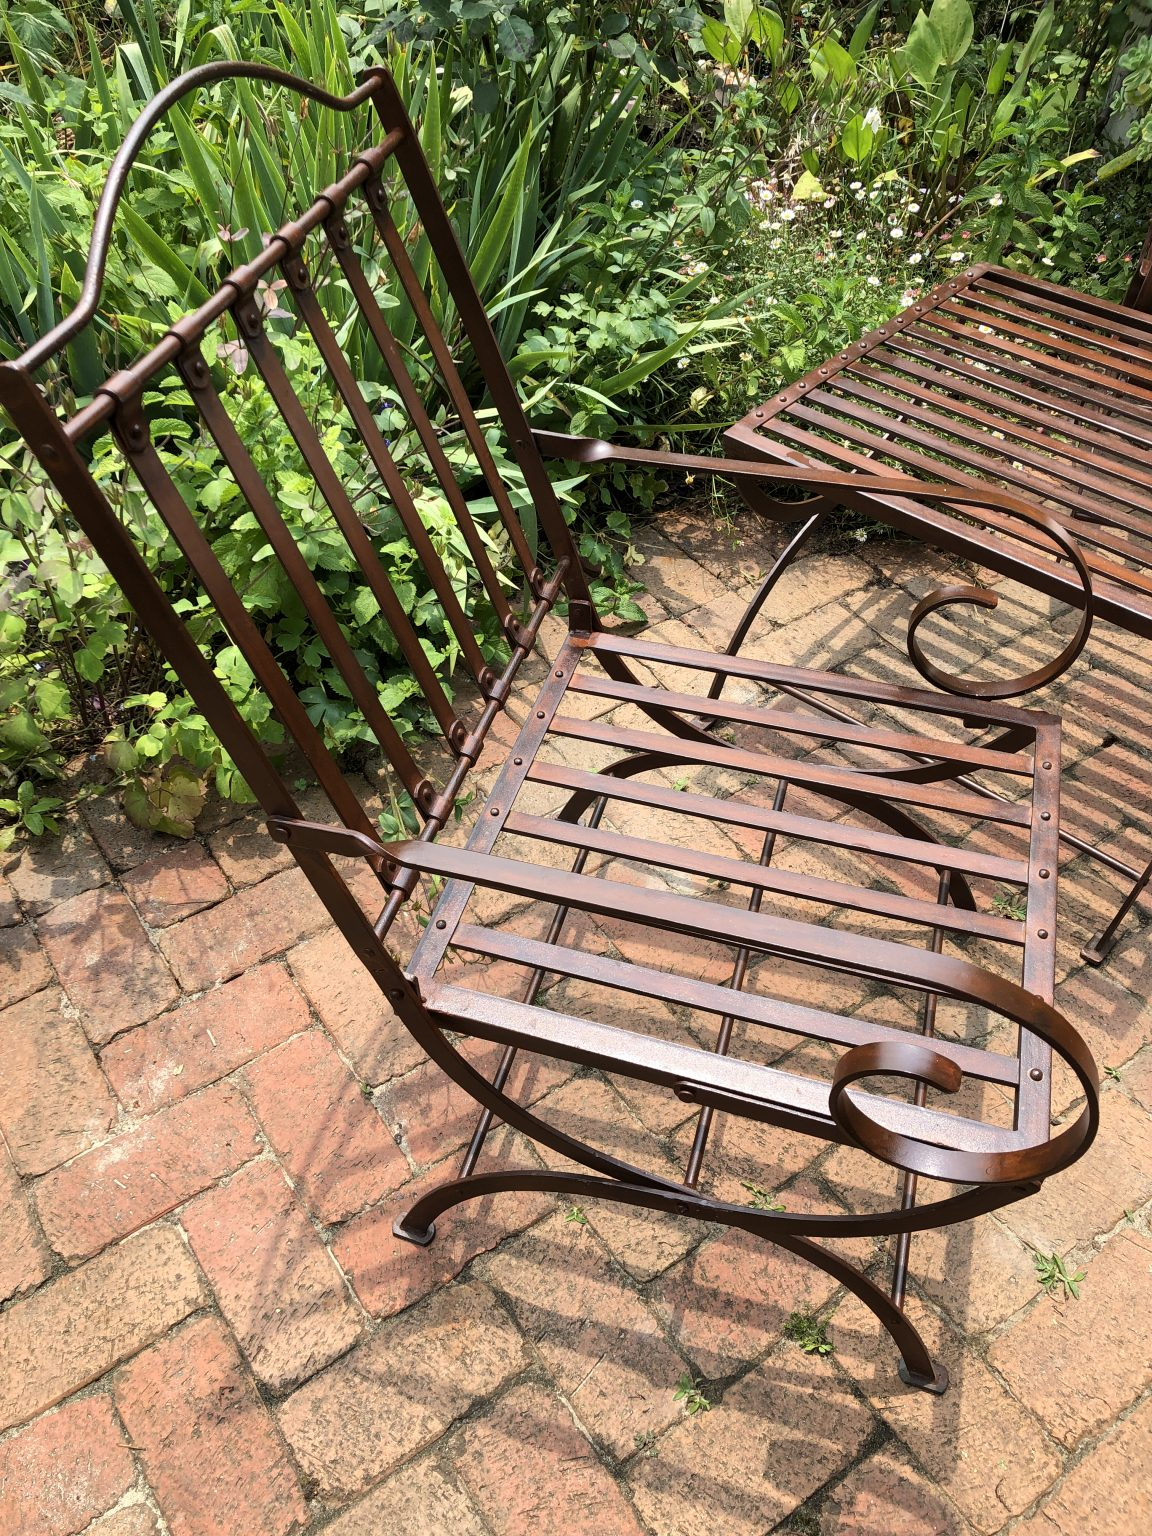 Wrought iron chair on a patio